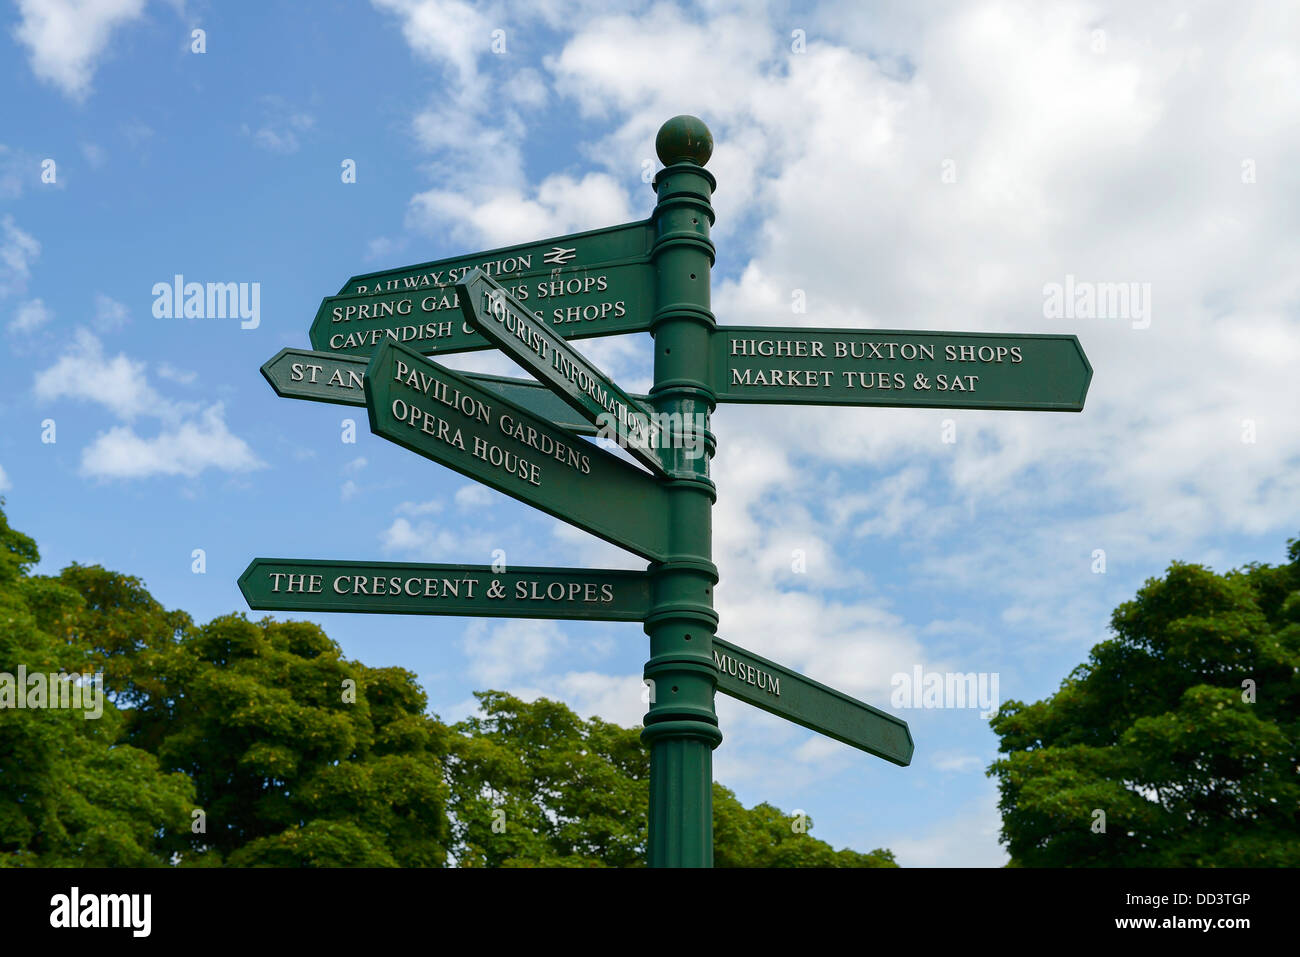 Signpost showing the tourist locations in Buxton town centre UK - Stock Image